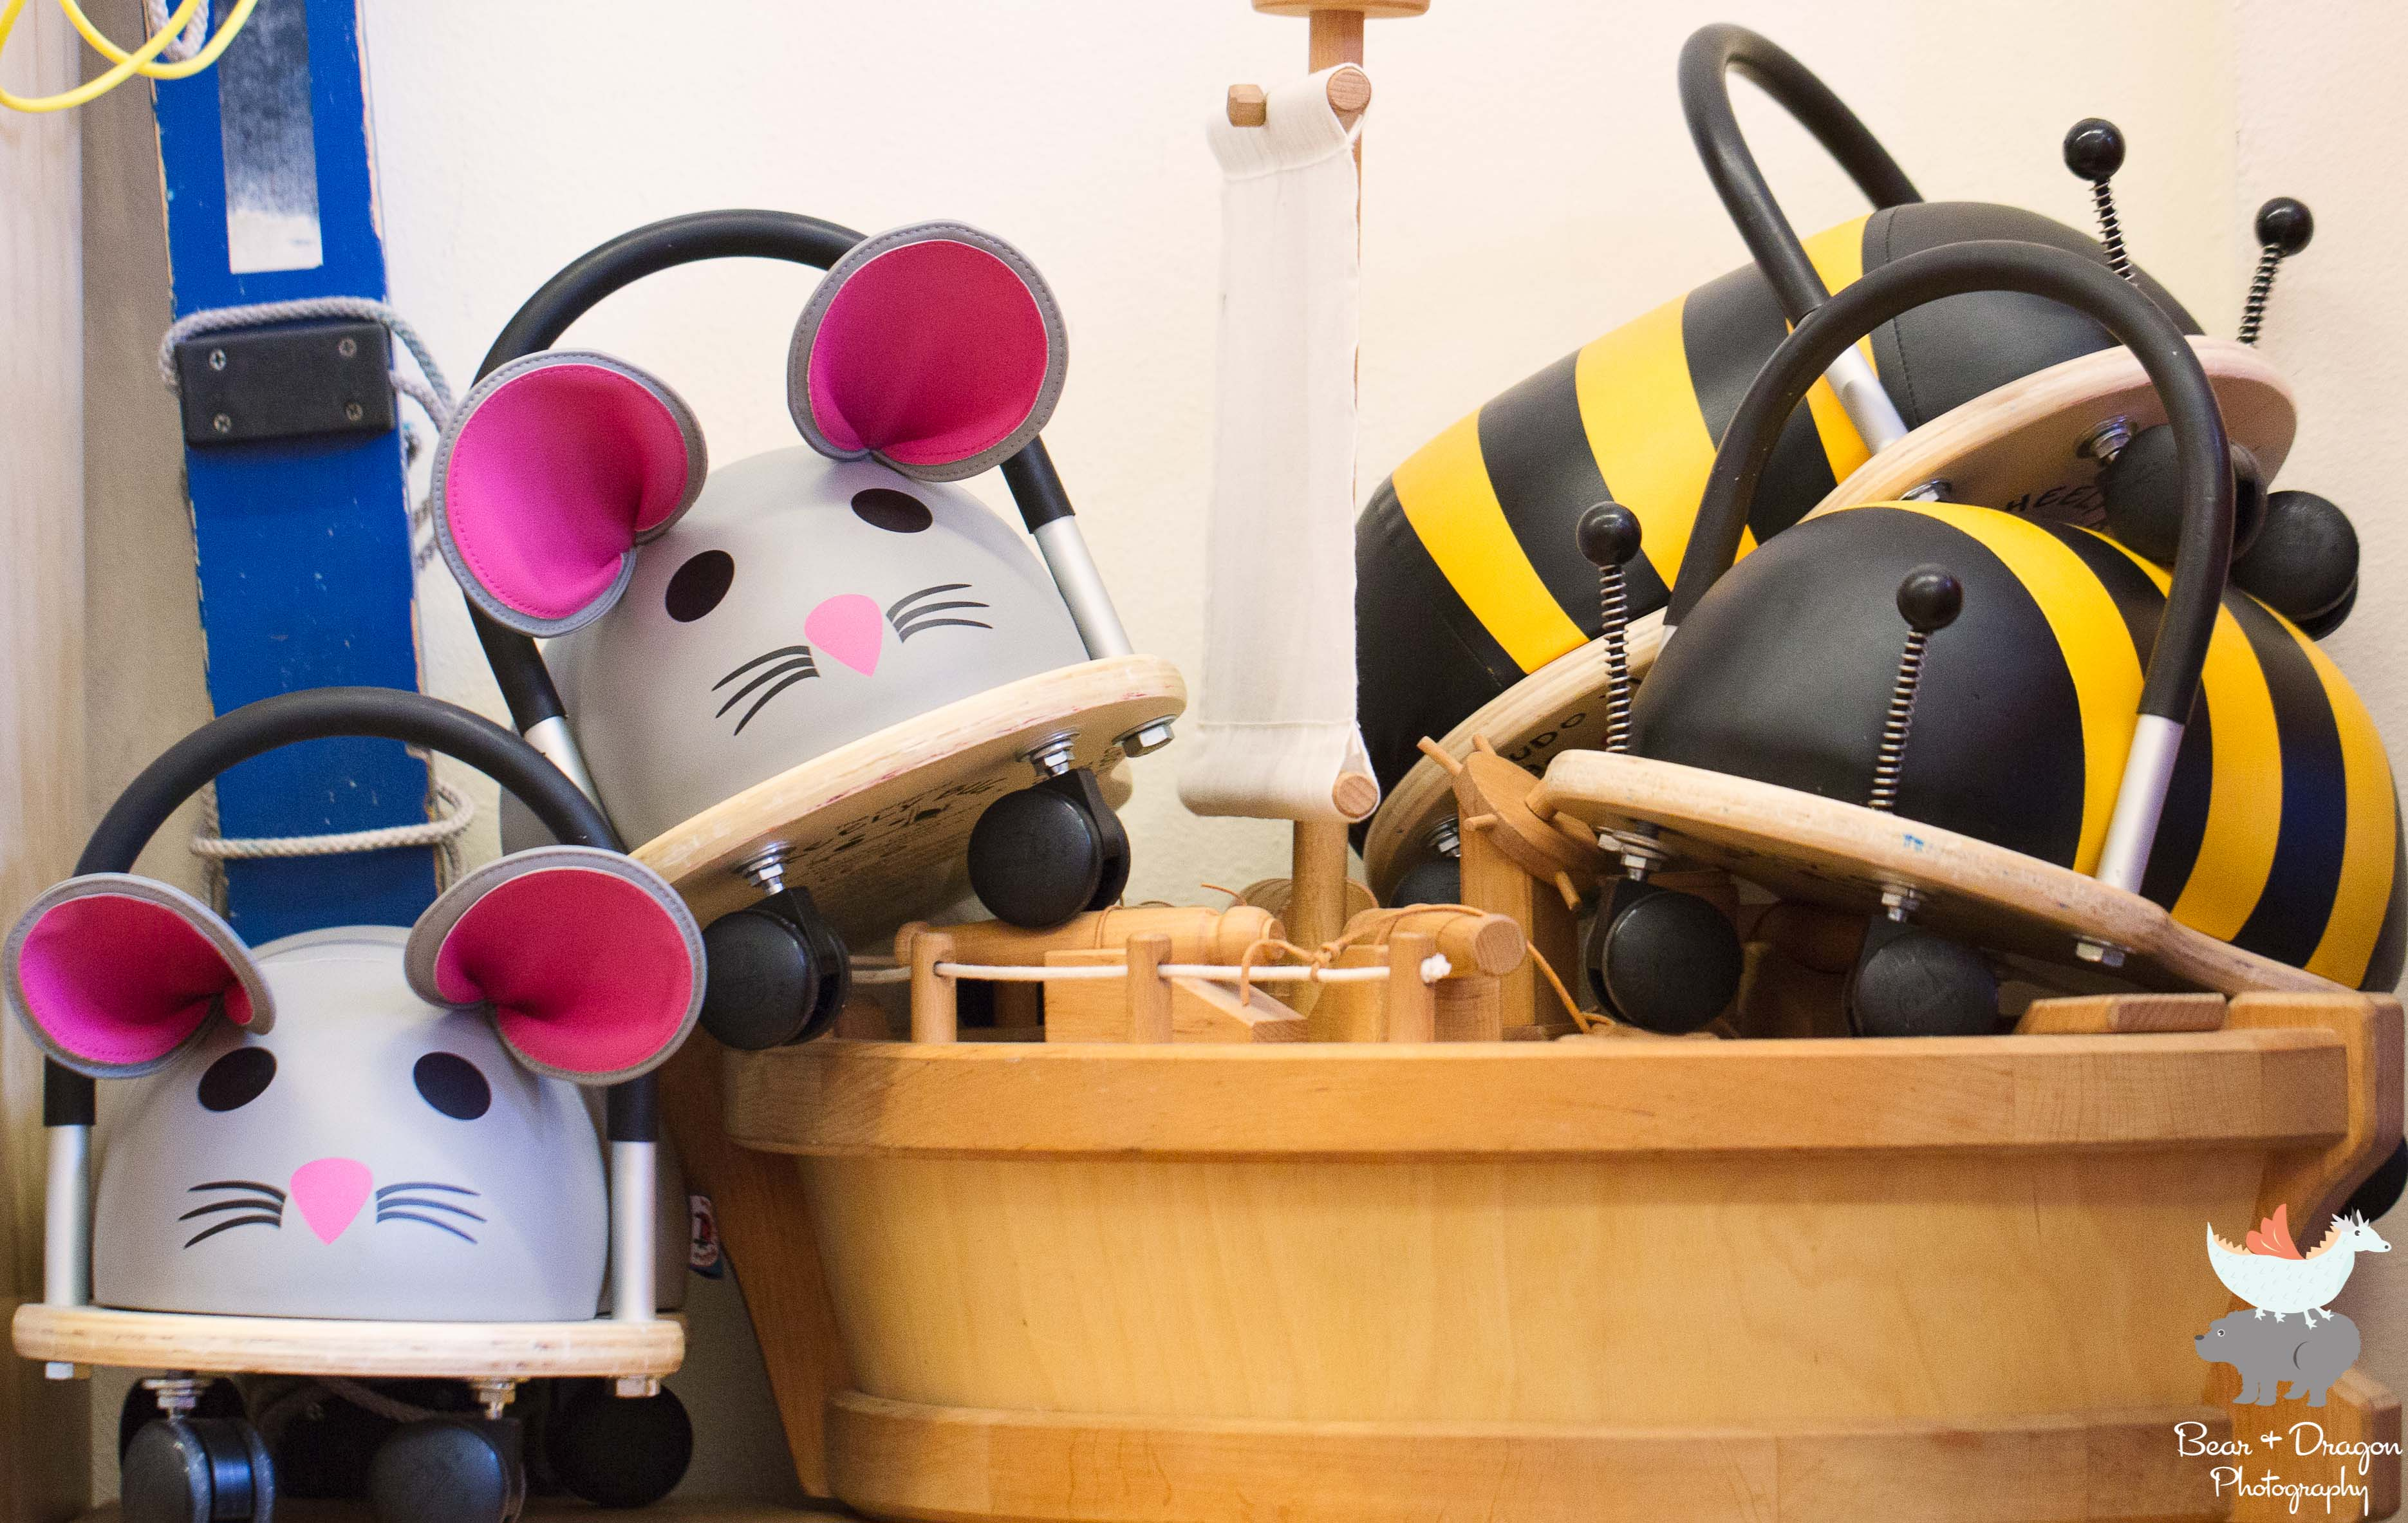 Are you a mouse or a bee?